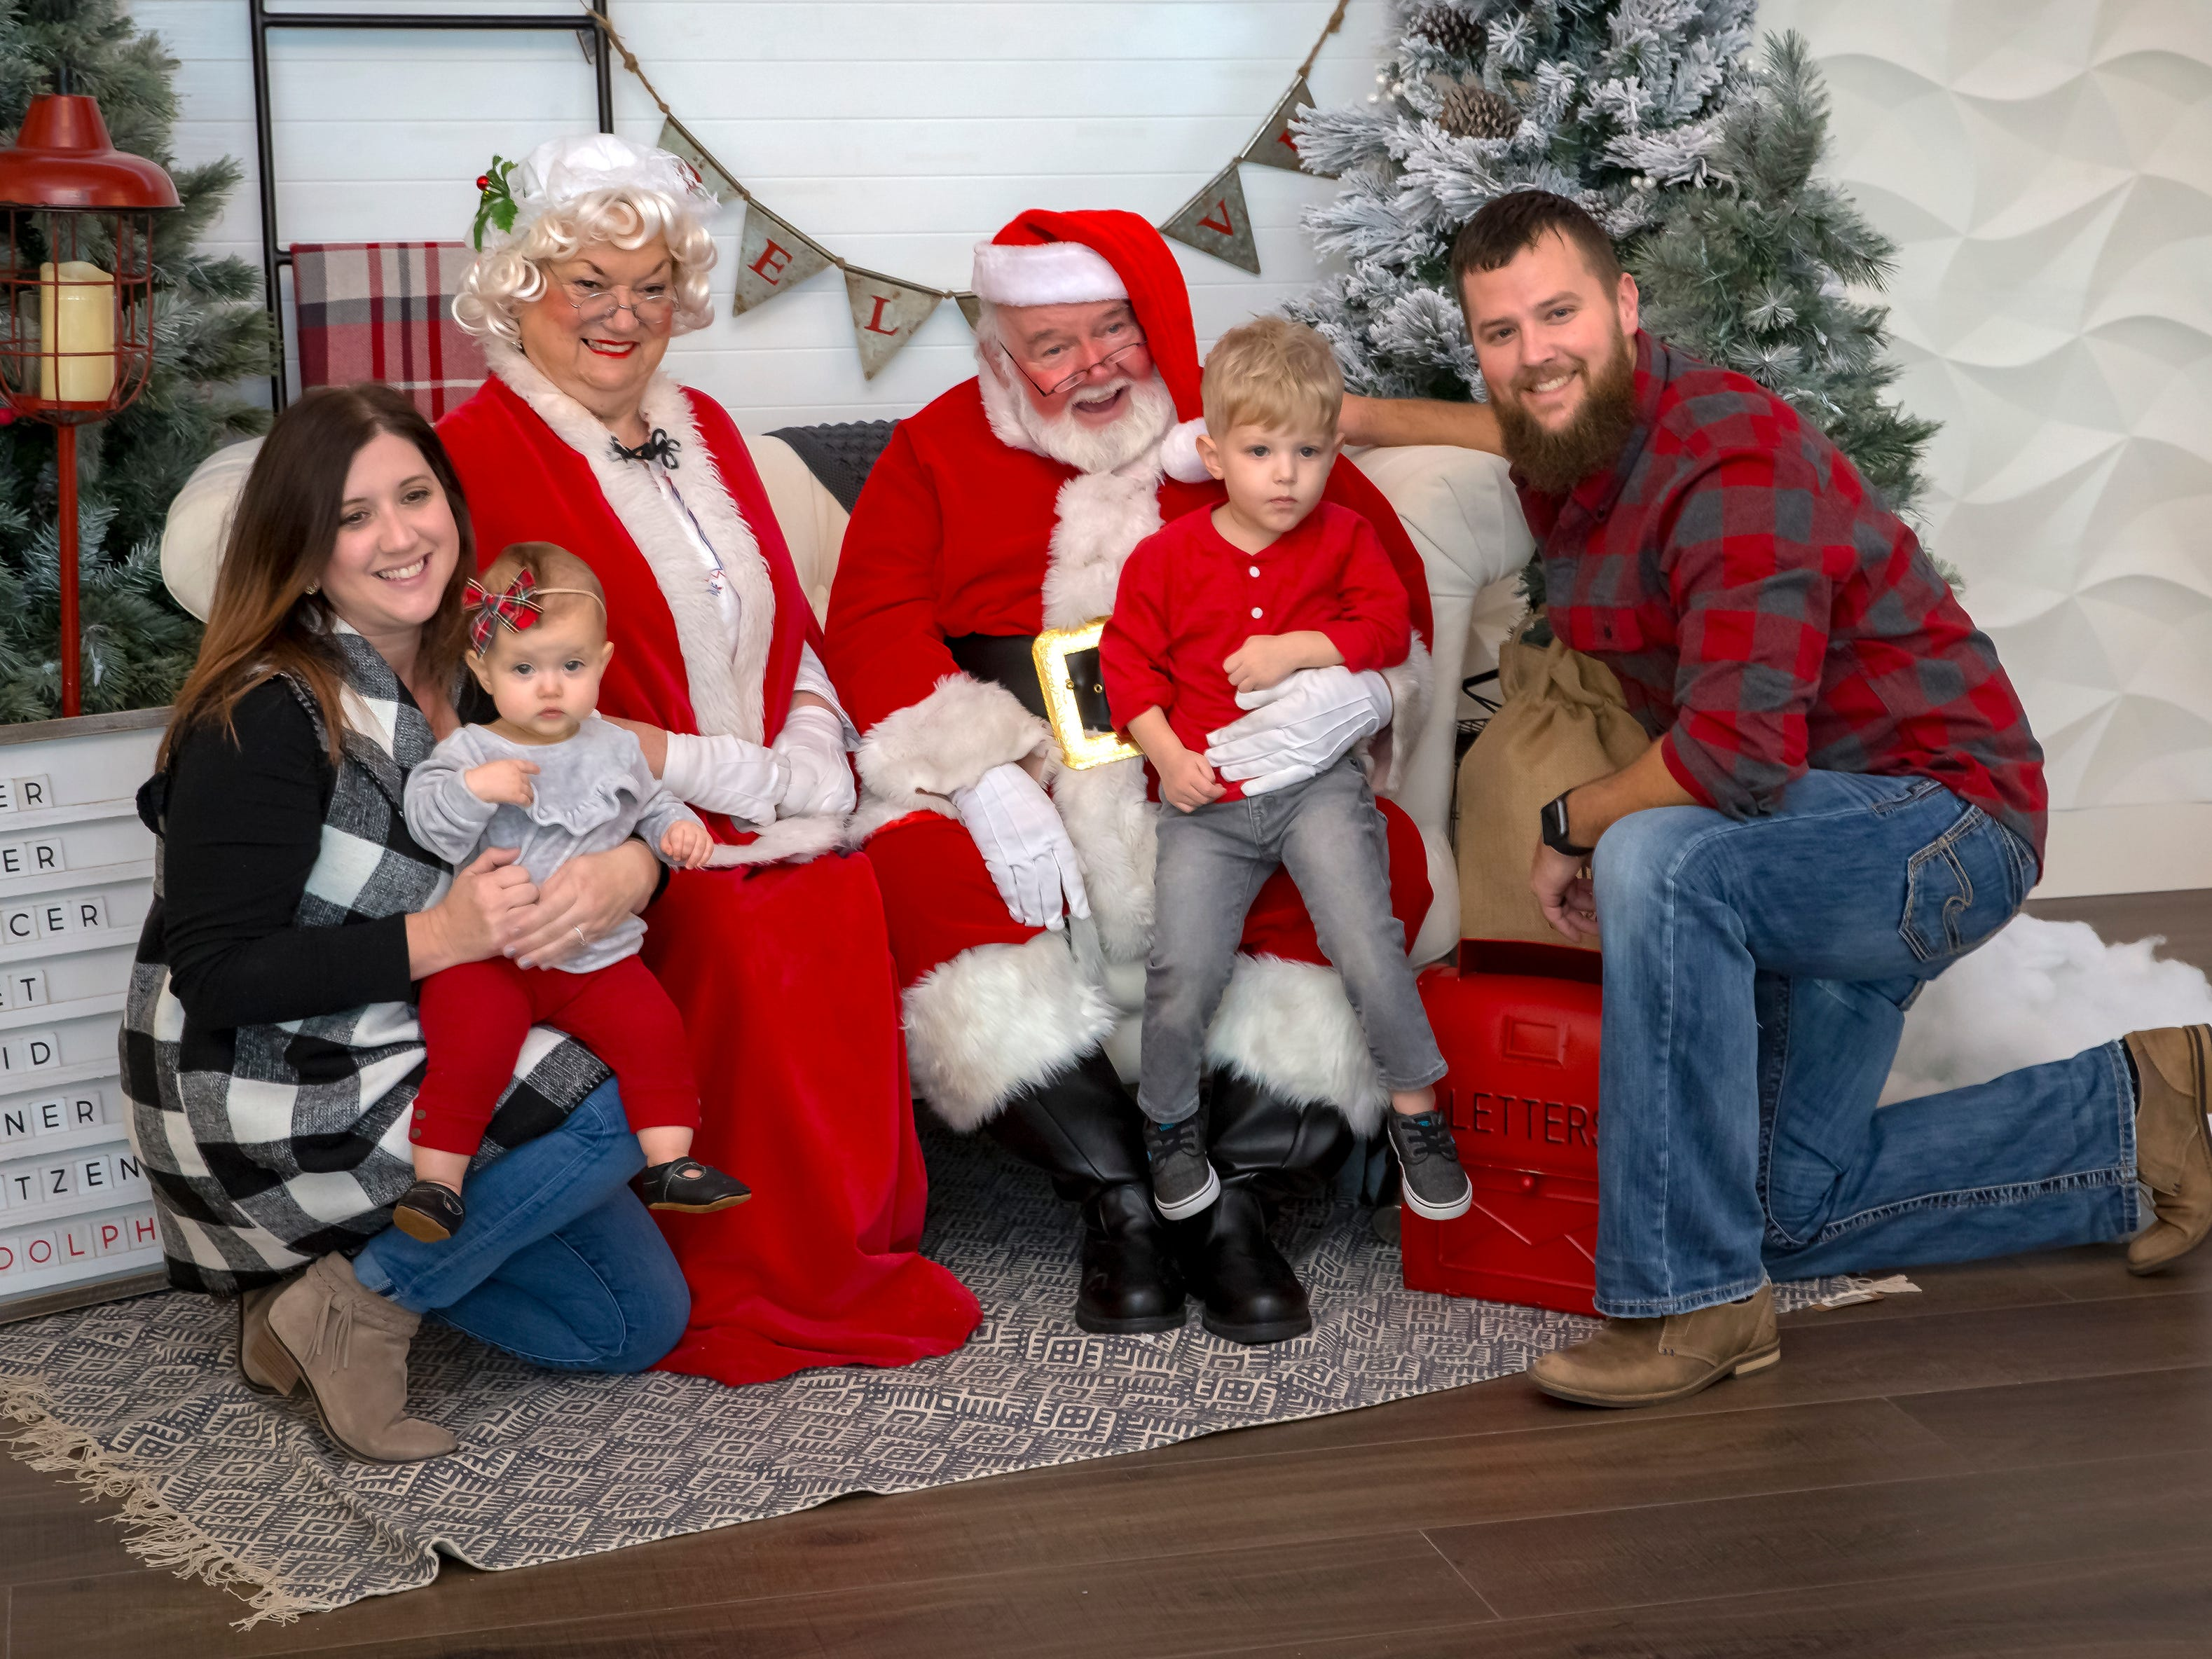 Jack, Leah, Sonya and Chris Turner have their photo taken with Santa during pictures with Santa at Fountains of Gateway.